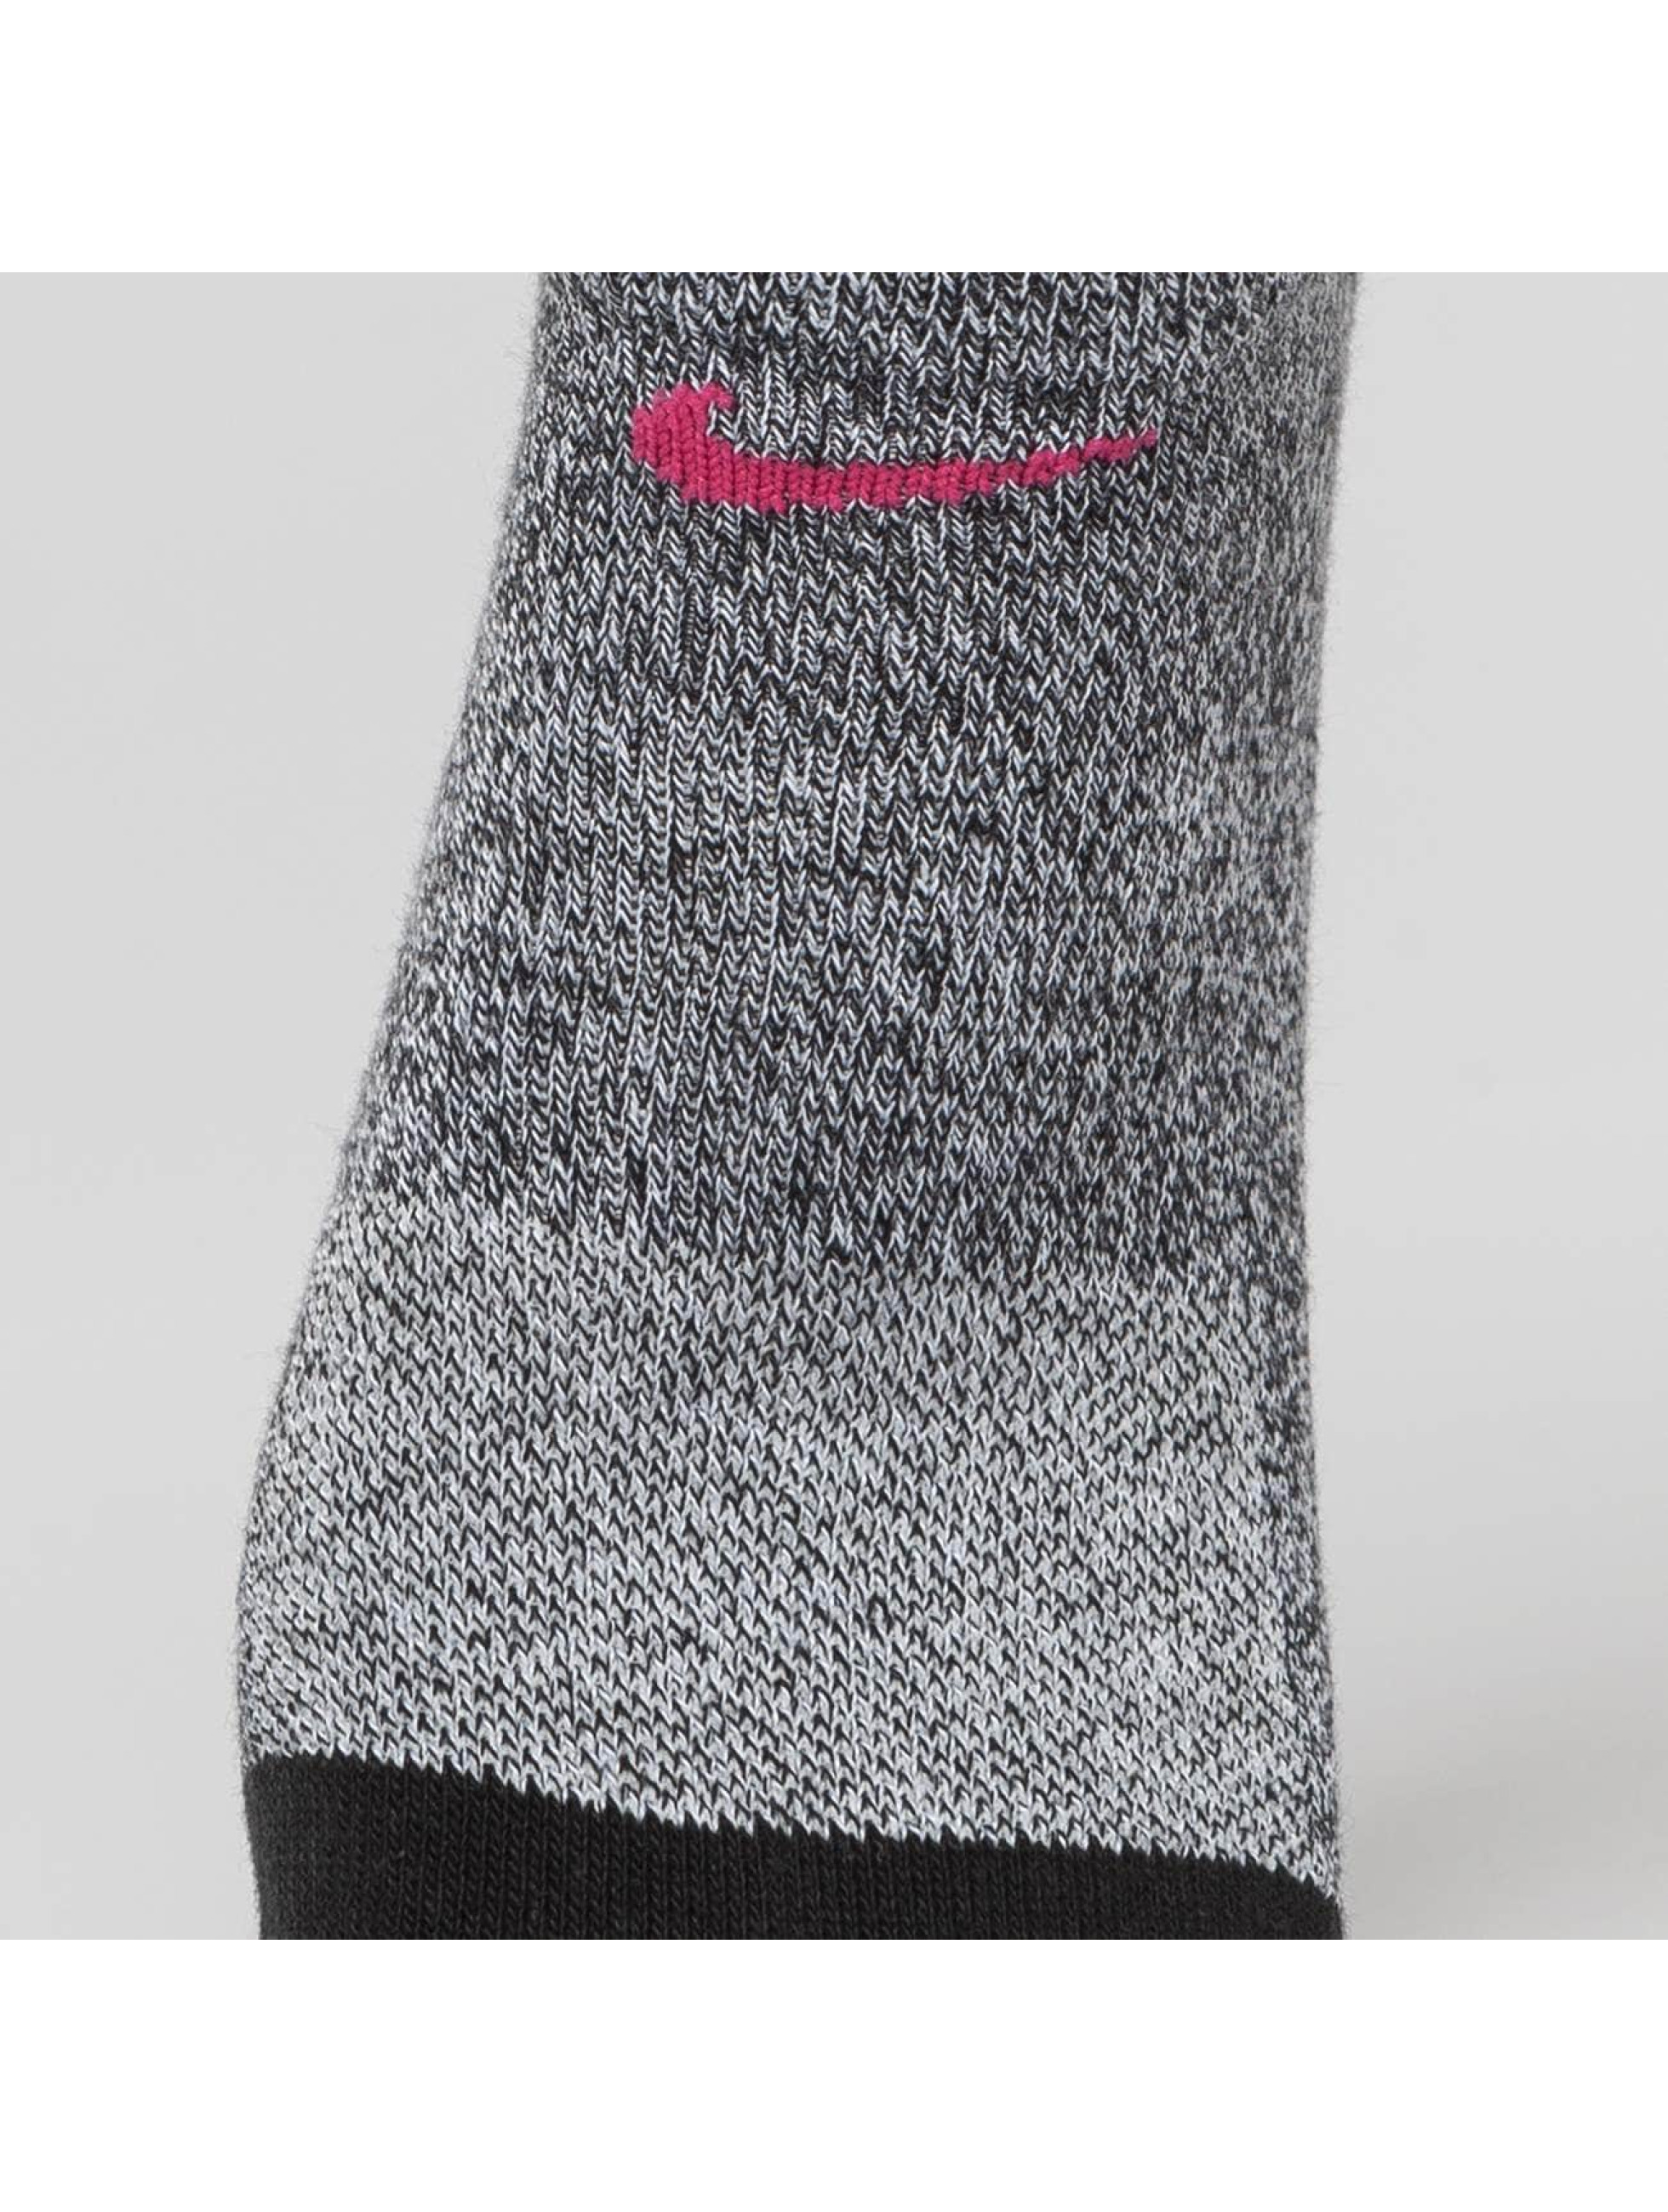 Nike Performance Socks Everyday Lightweight No-Show Training 3 Pack colored